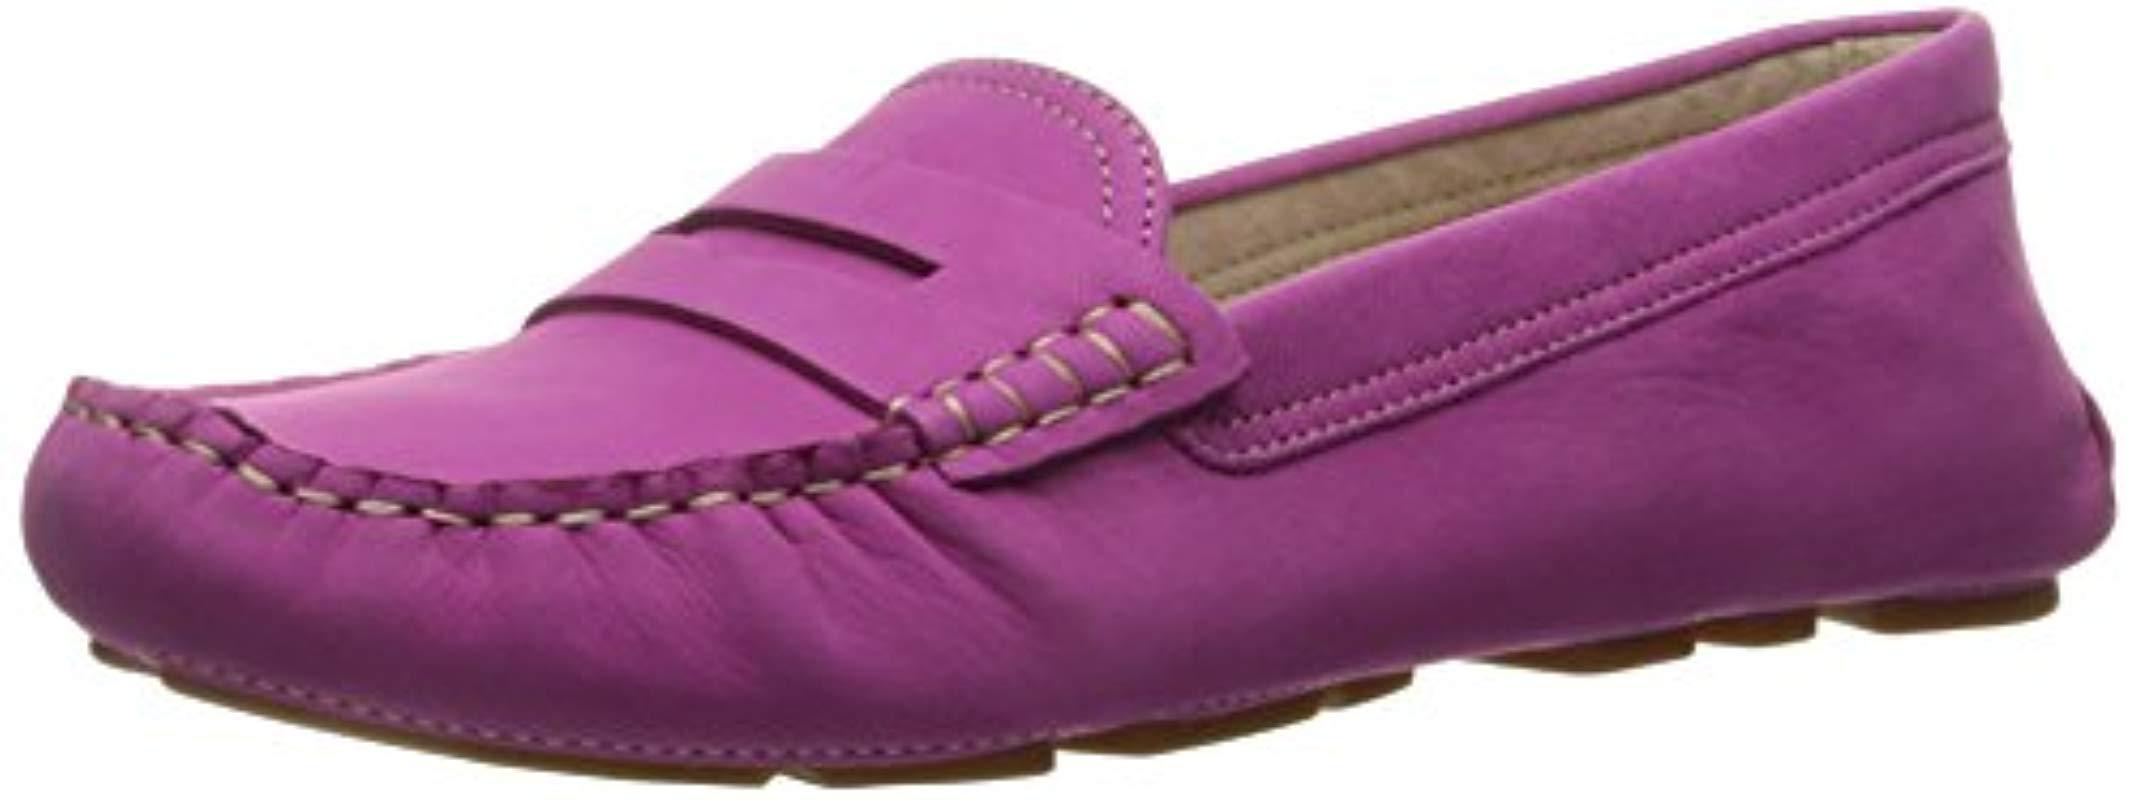 be747e65a9f Lyst - Sam Edelman Filly Penny Loafer in Purple - Save 28%